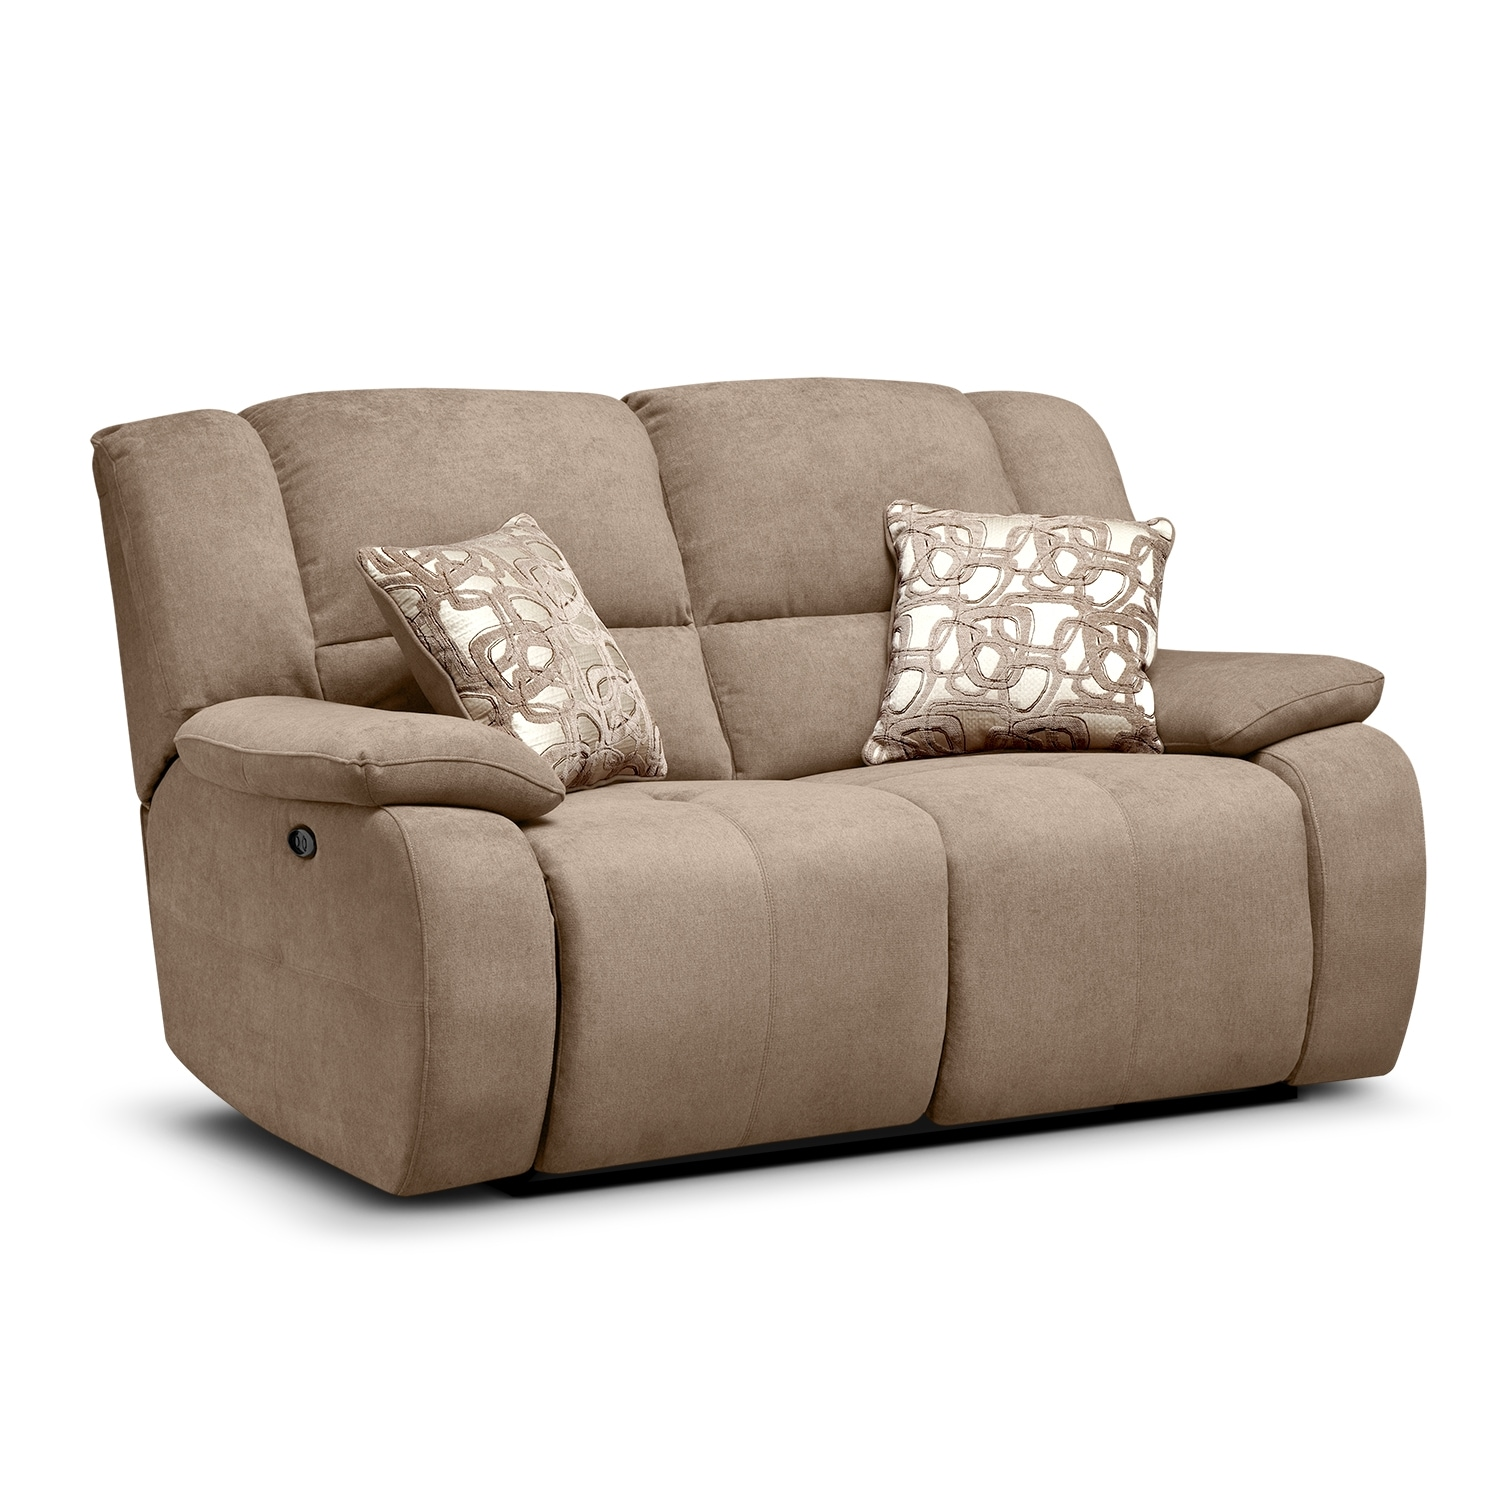 Destin Beige Power Reclining Loveseat Value City